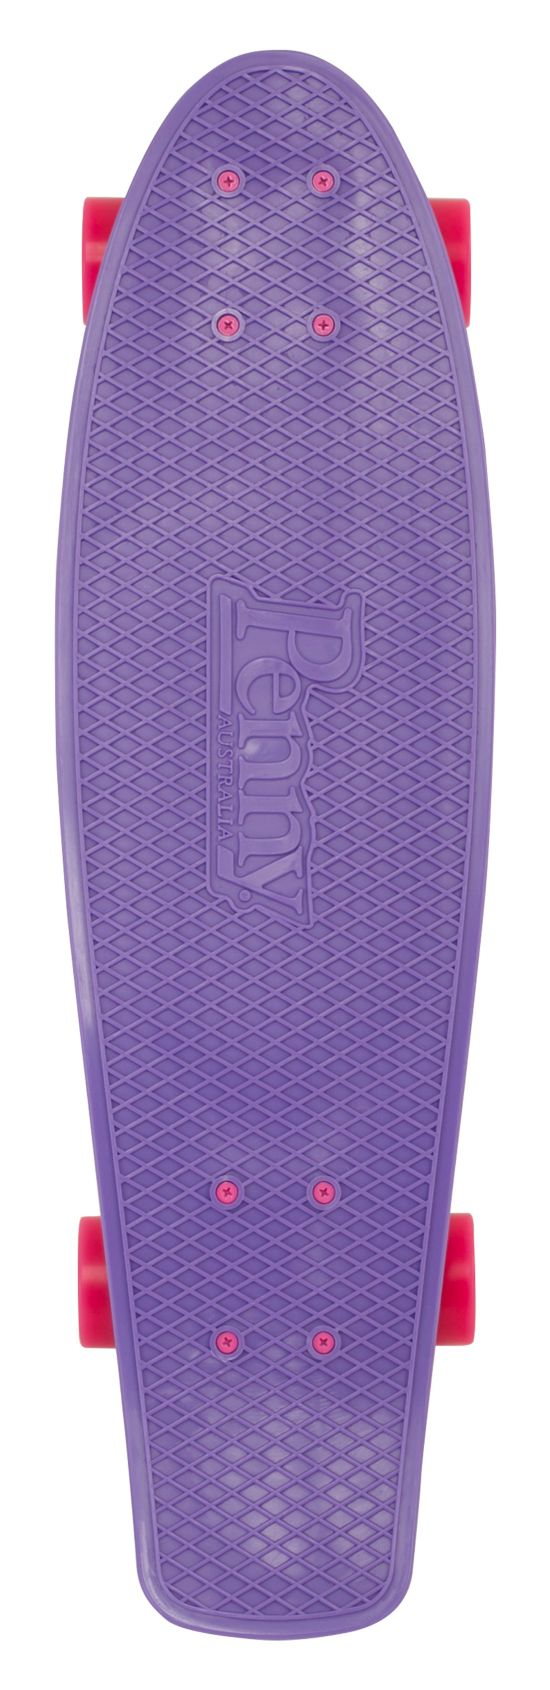 "Nickel 27"" Skateboard PURPLE"